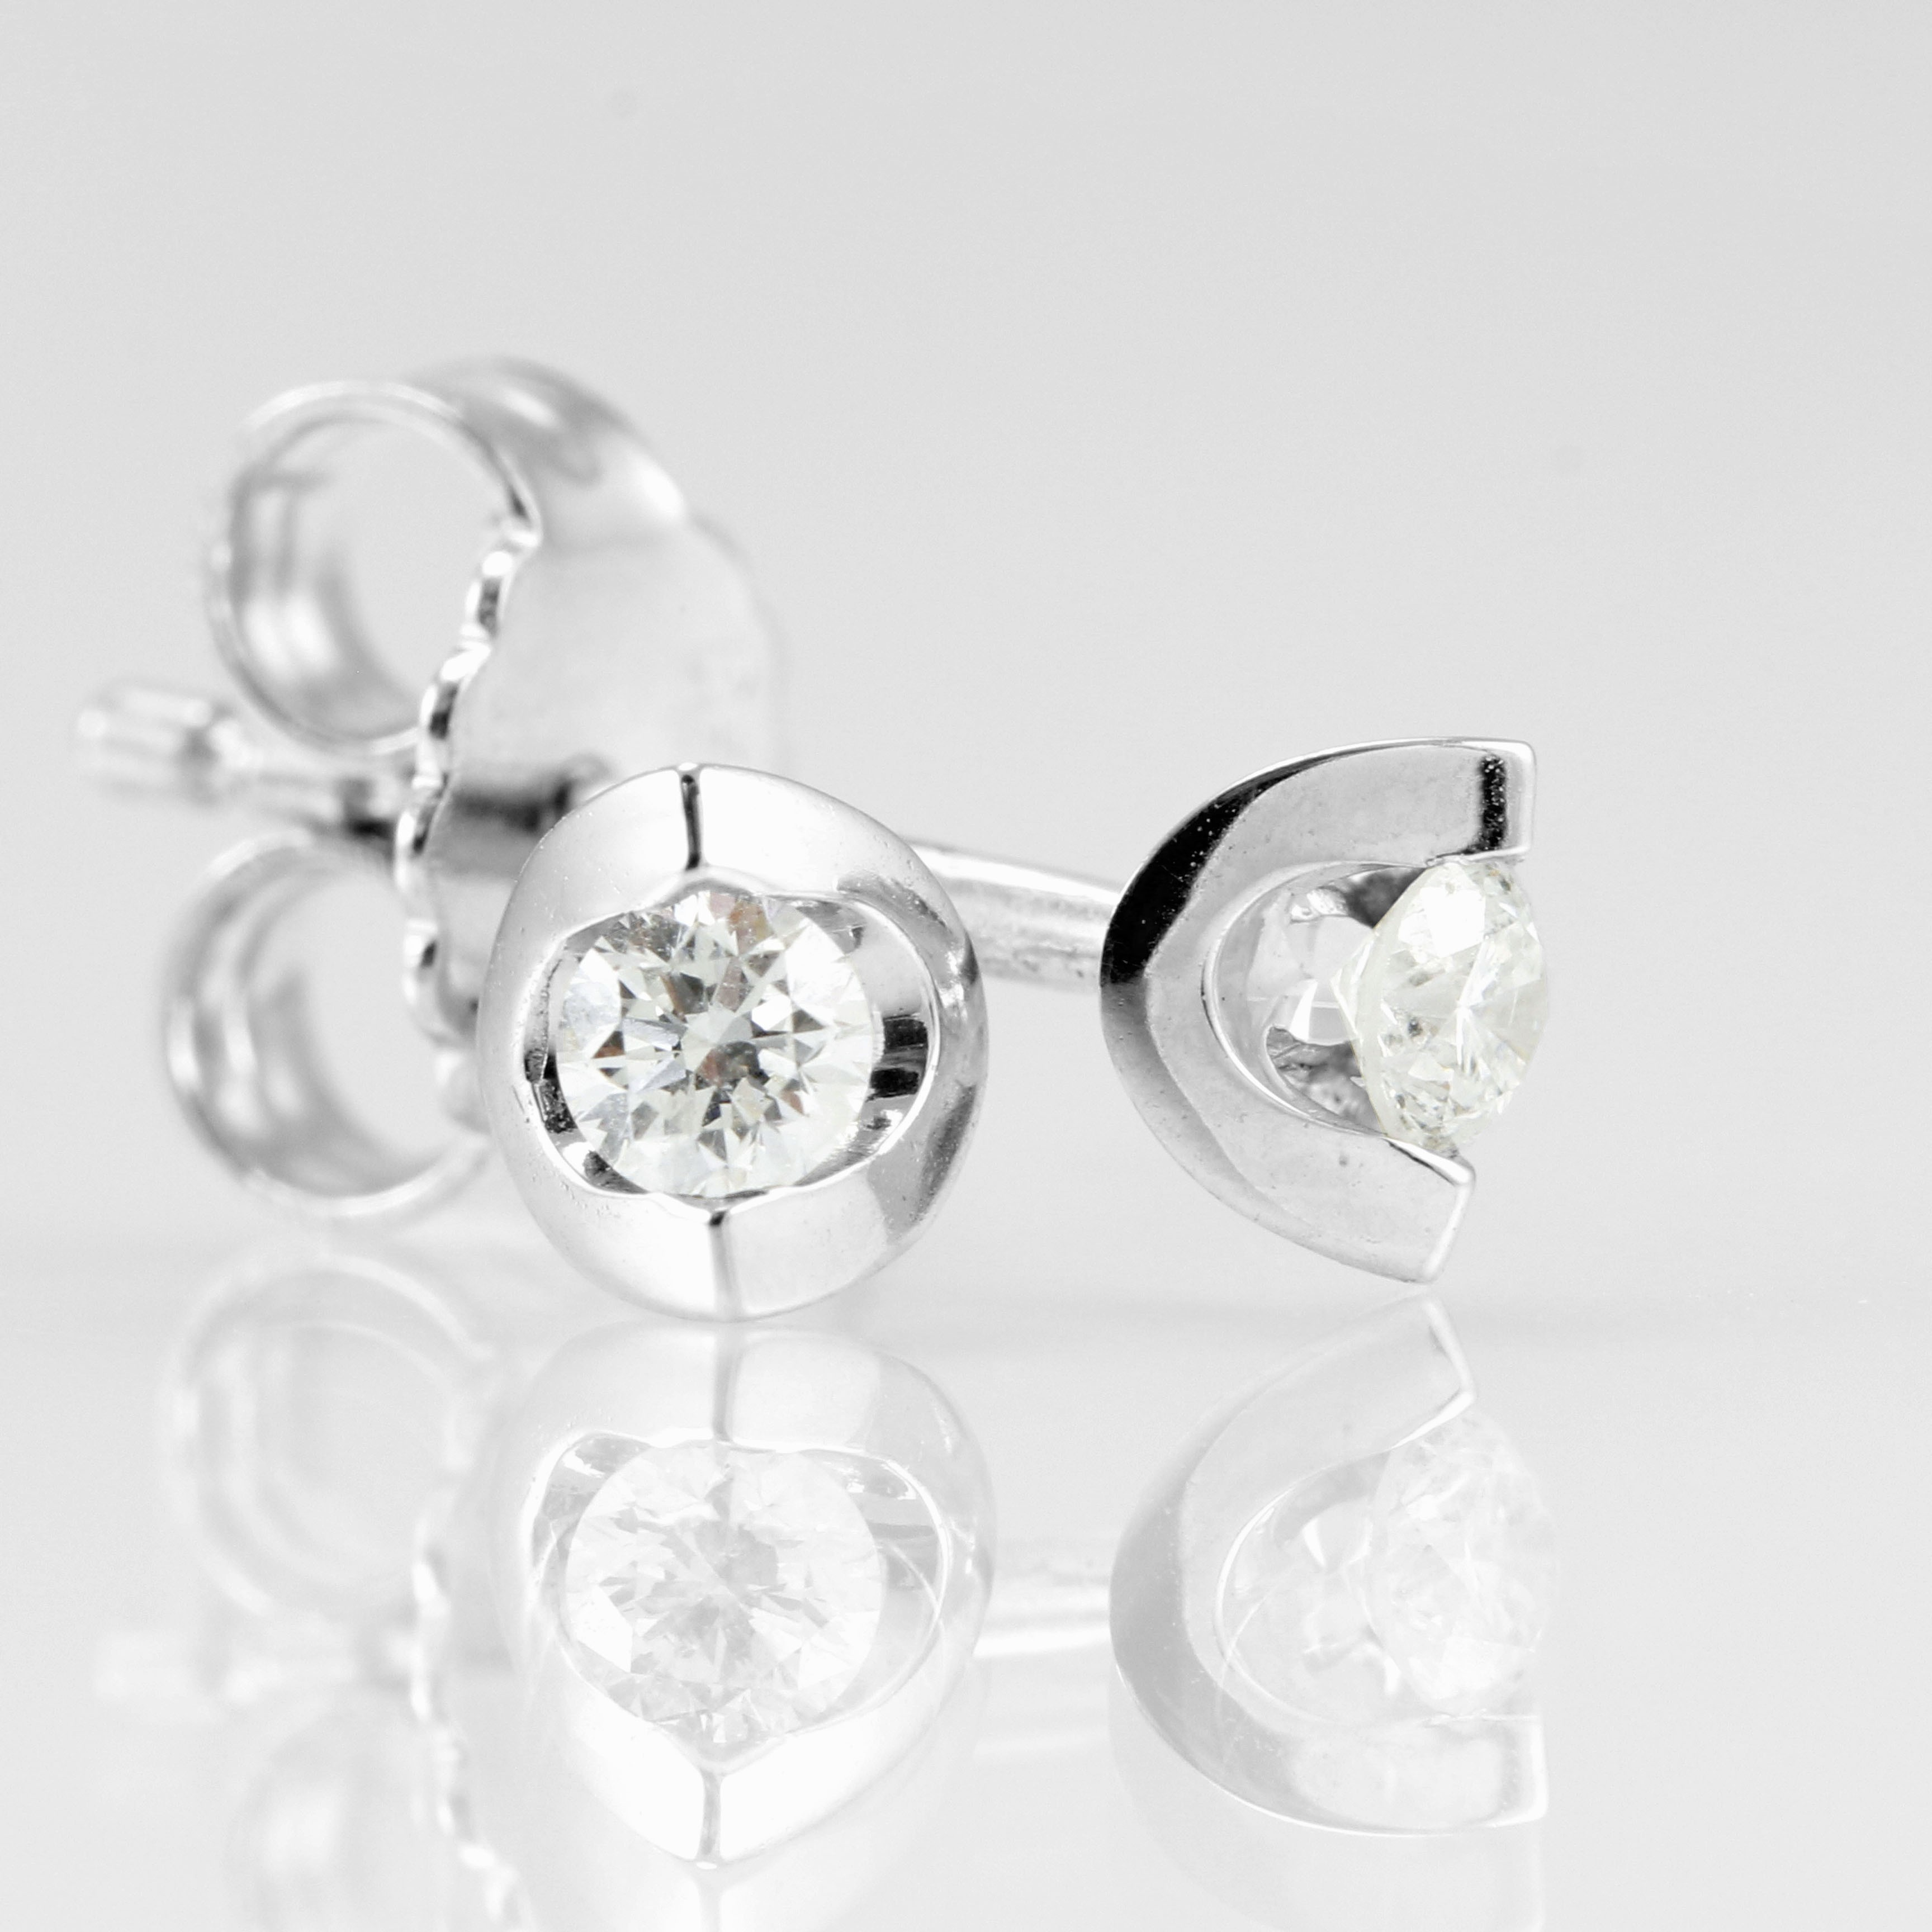 Just because it's Valentine's Day, doesn't mean everything has to be hearts and flowers. But you simply cannot go wrong with these Dazzling Diamond Earrings. With a 0.25ct Diamond total, crafted in smooth 18ct White Gold. Choose these Eclipse Diamond Earrings for your love this Valentine's Day. £450